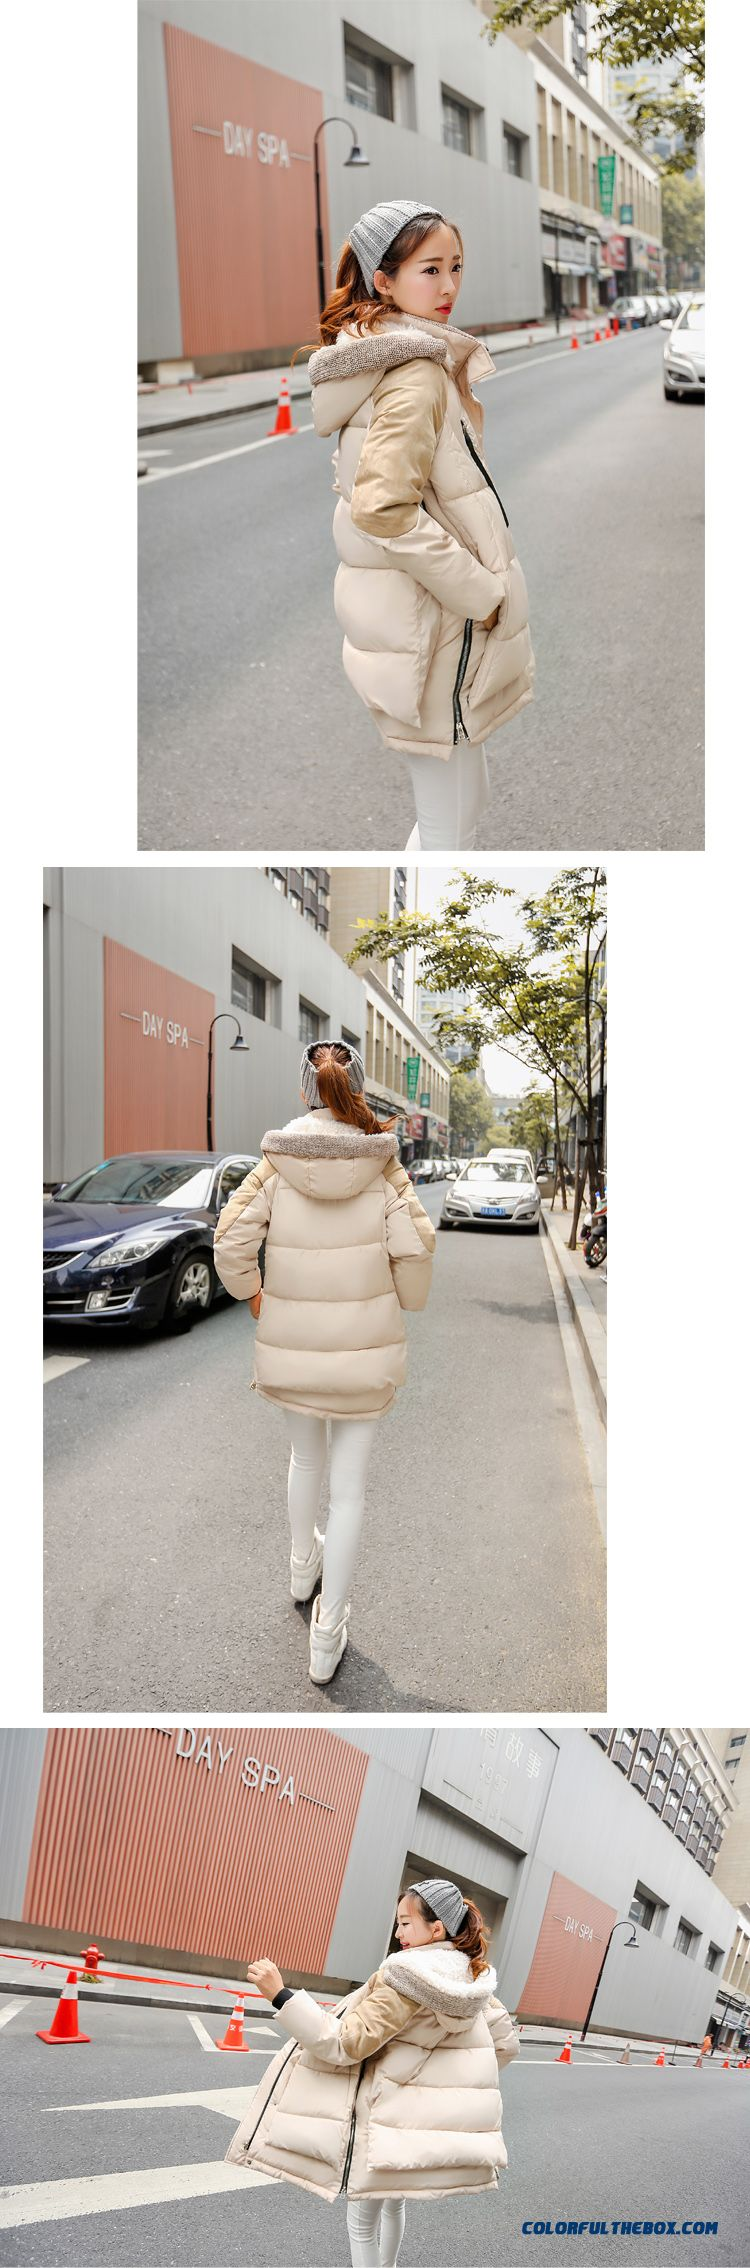 The Newest Style Fashionable Women Hooded Coat Thick Warm Lamb's Wool Jacket - detail images